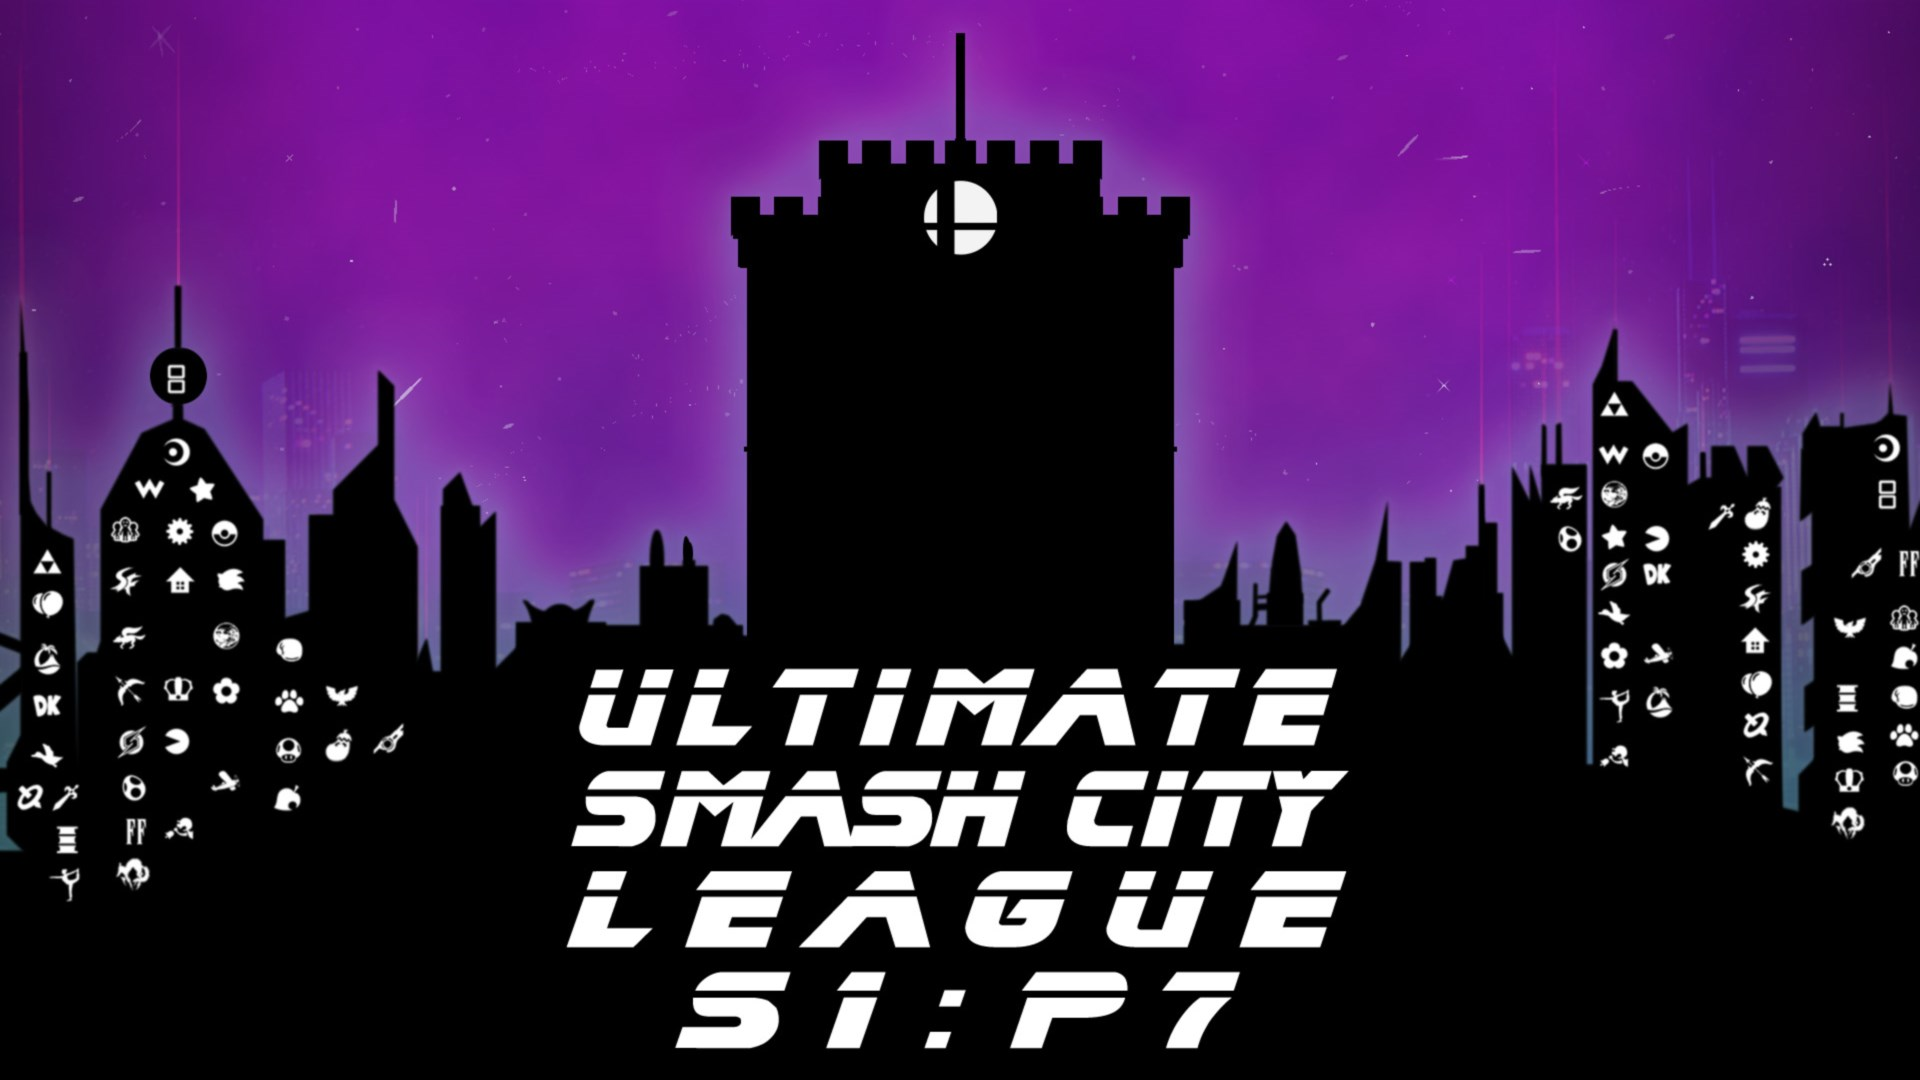 Ultimate Smash City League S1:P7 Θεσσαλονίκη